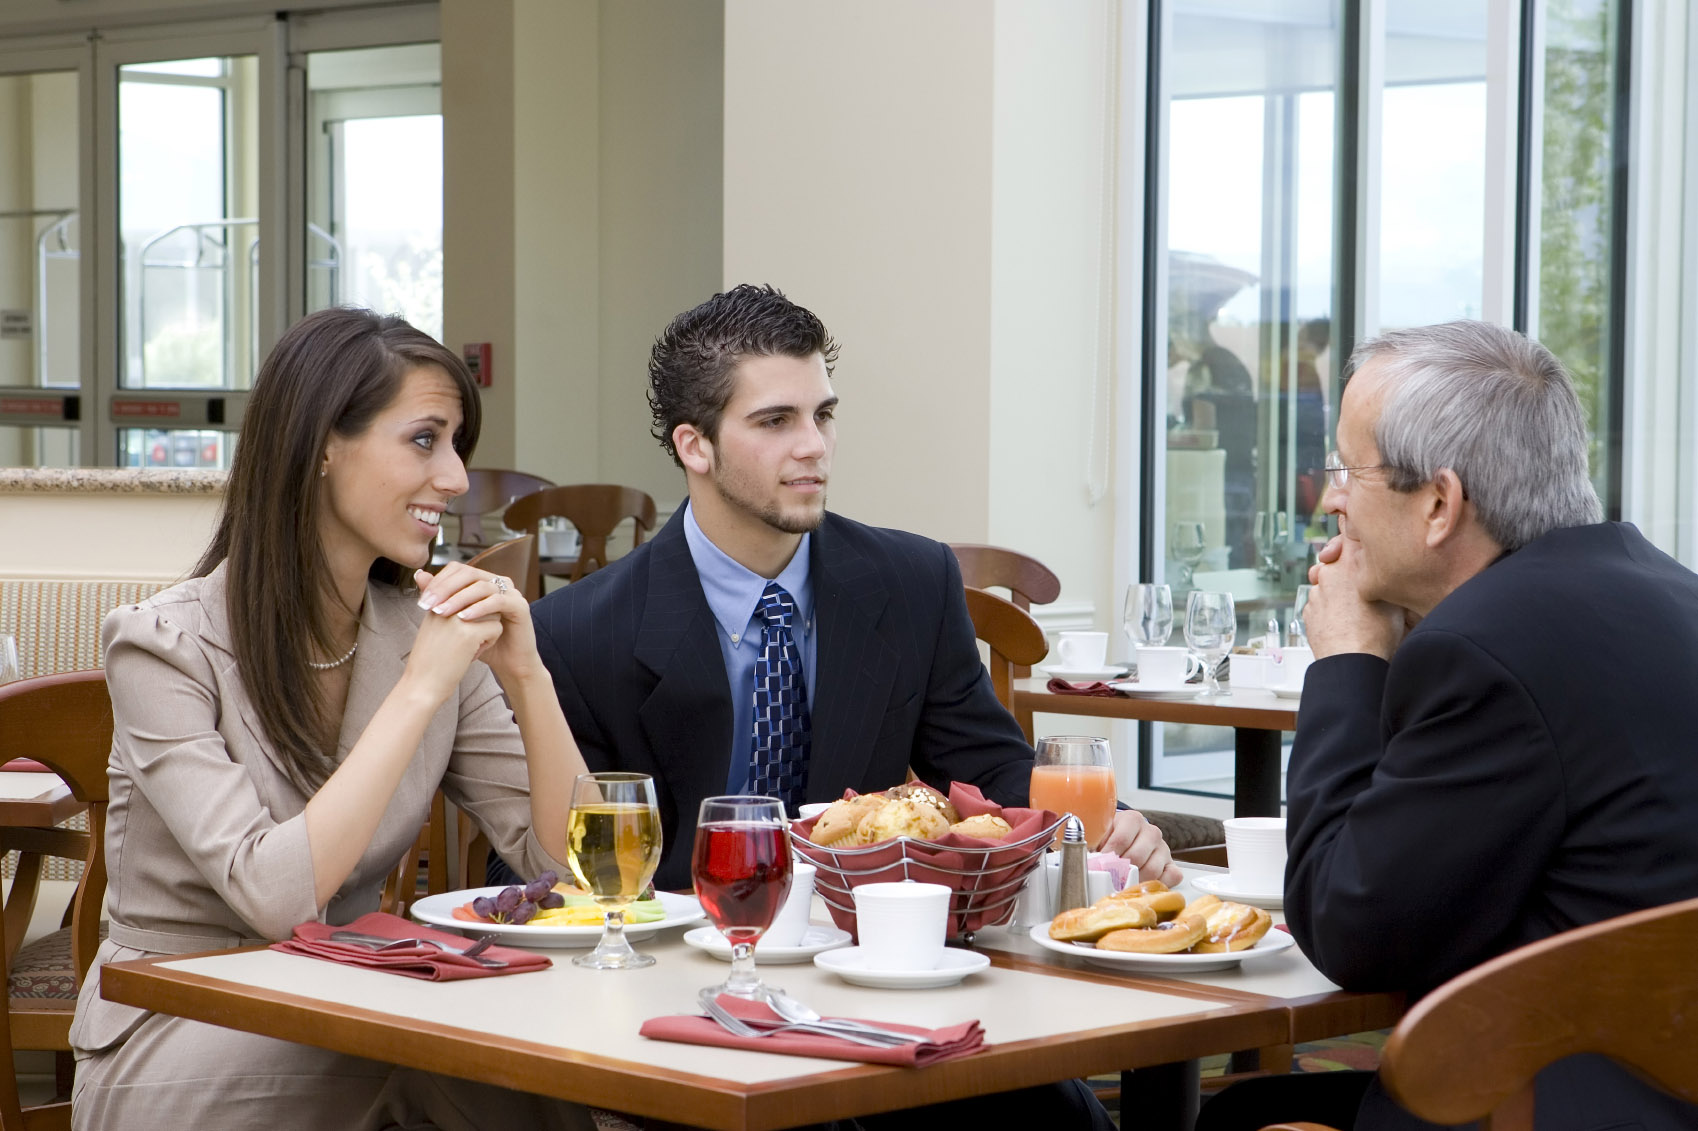 How to Plan and Survive Business Lunch